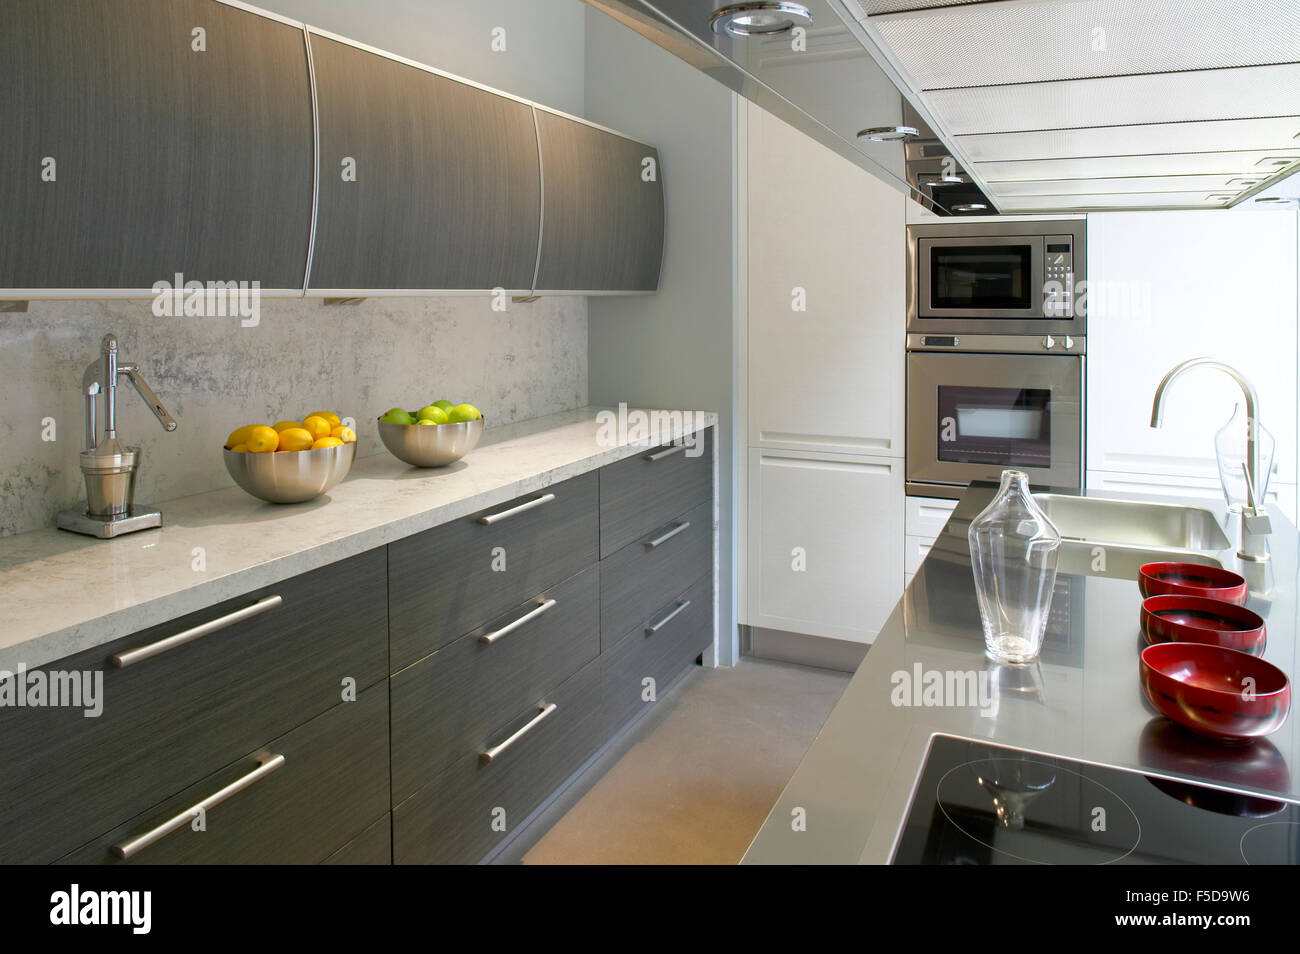 View Of A Domestic Modern Kitchen With Cabinets Drawers